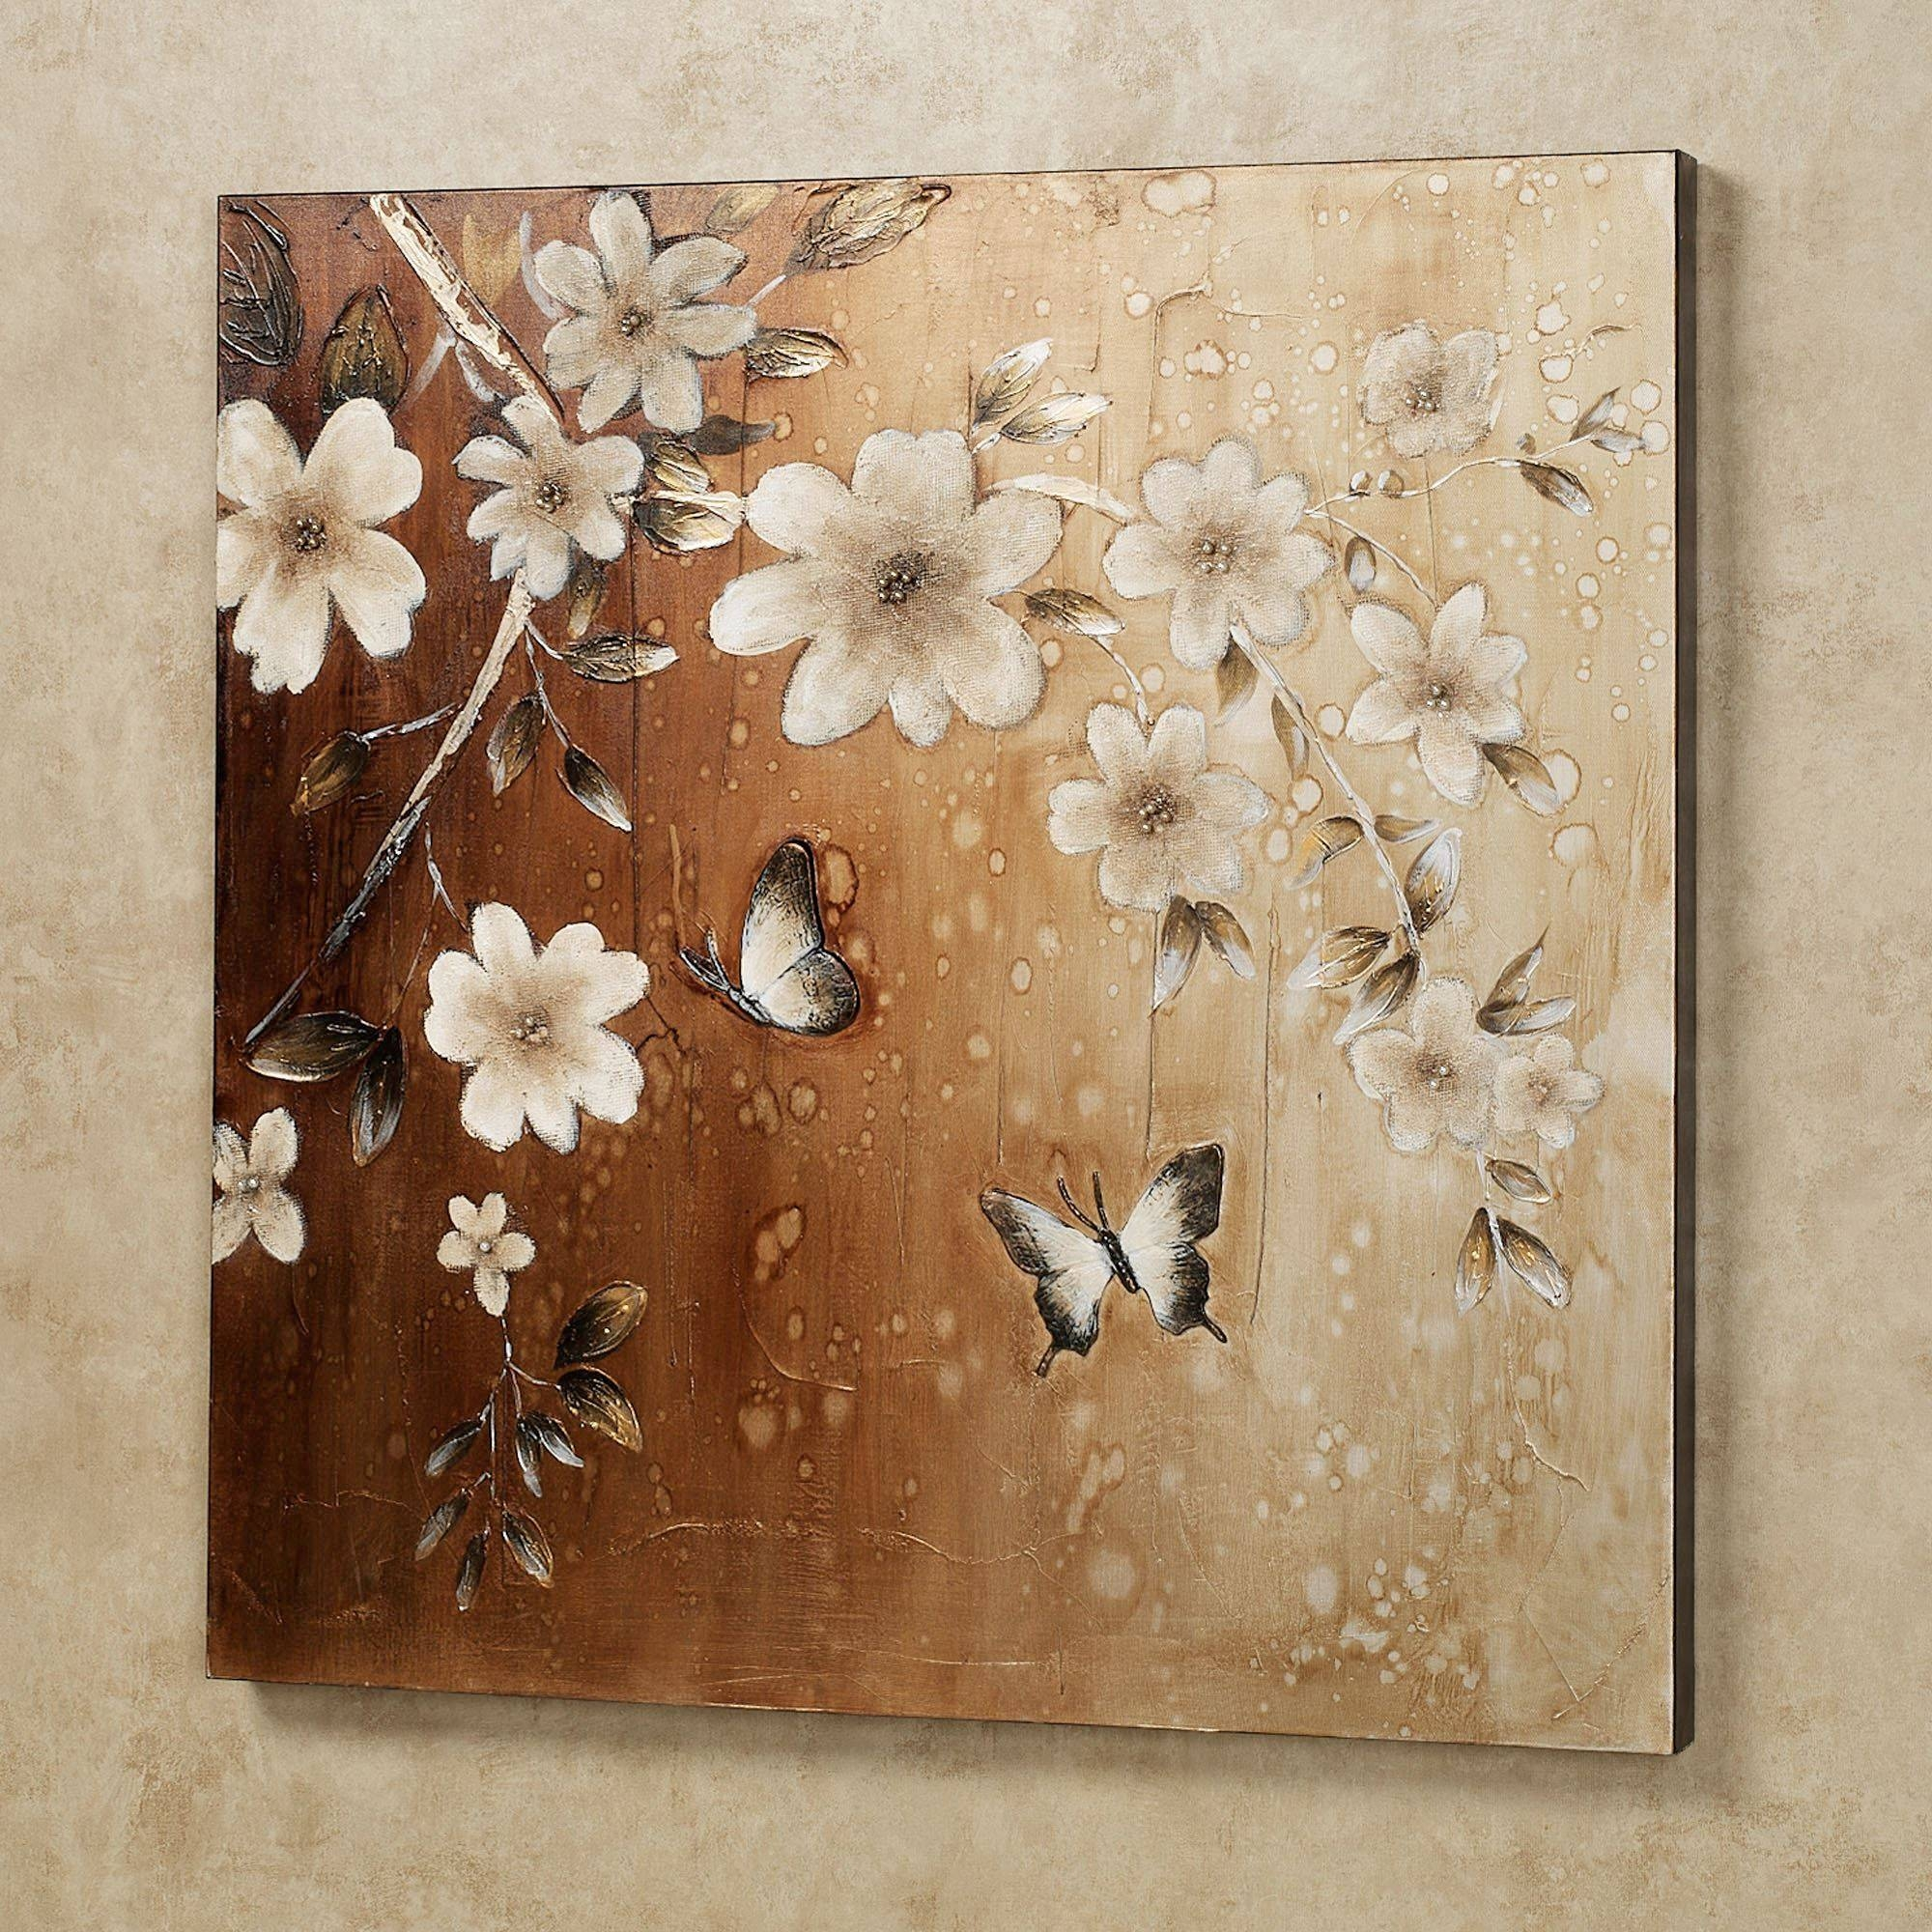 Midday Sun Butterfly Floral Canvas Wall Art Pertaining To Most Recent Floral Wall Art Canvas (View 11 of 20)